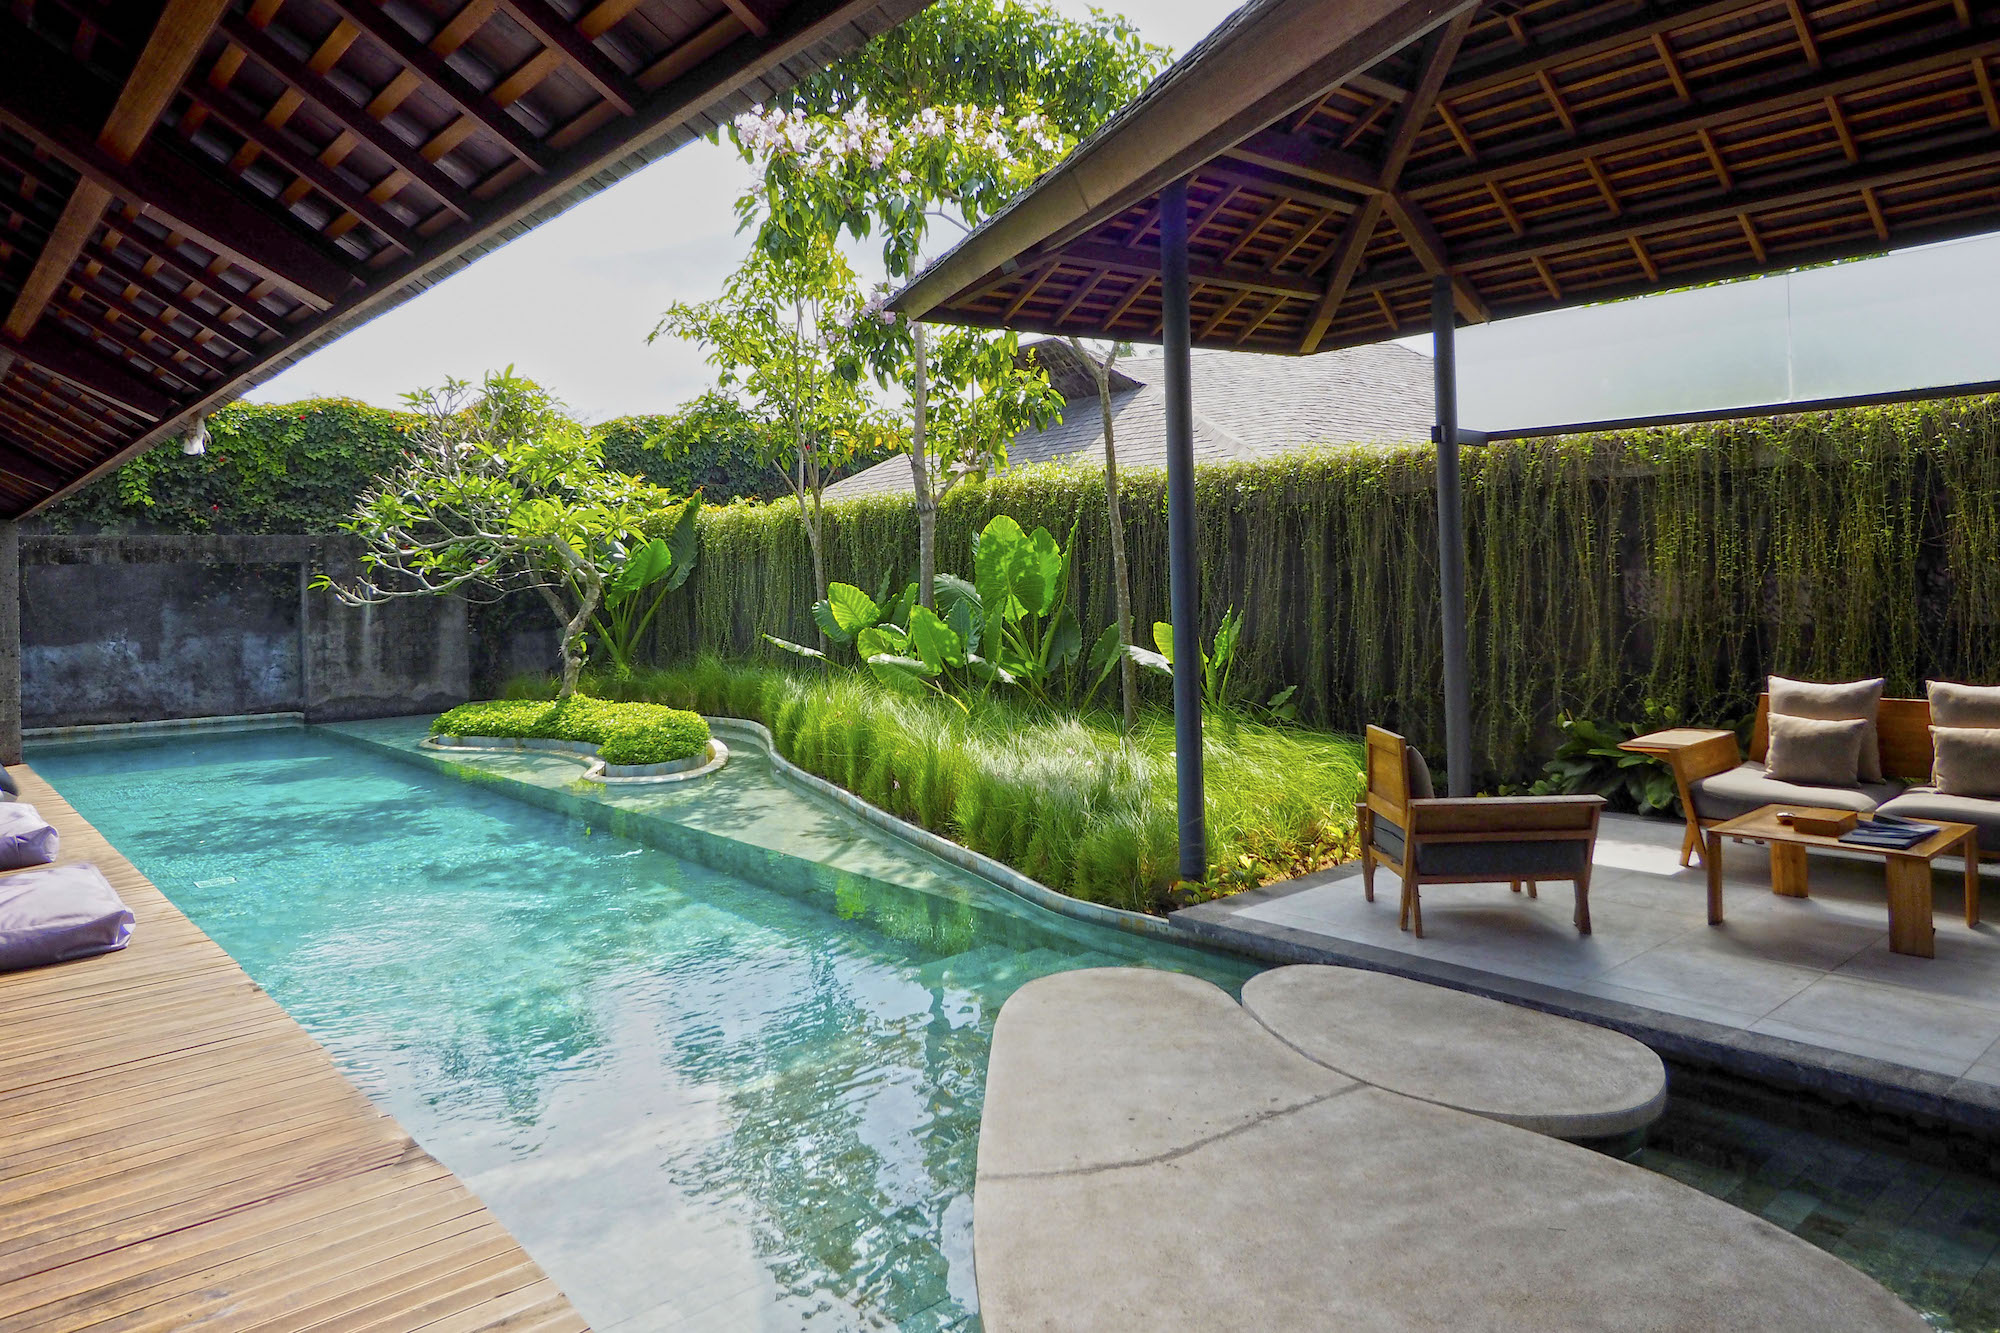 Relaxed Luxury at The Santai